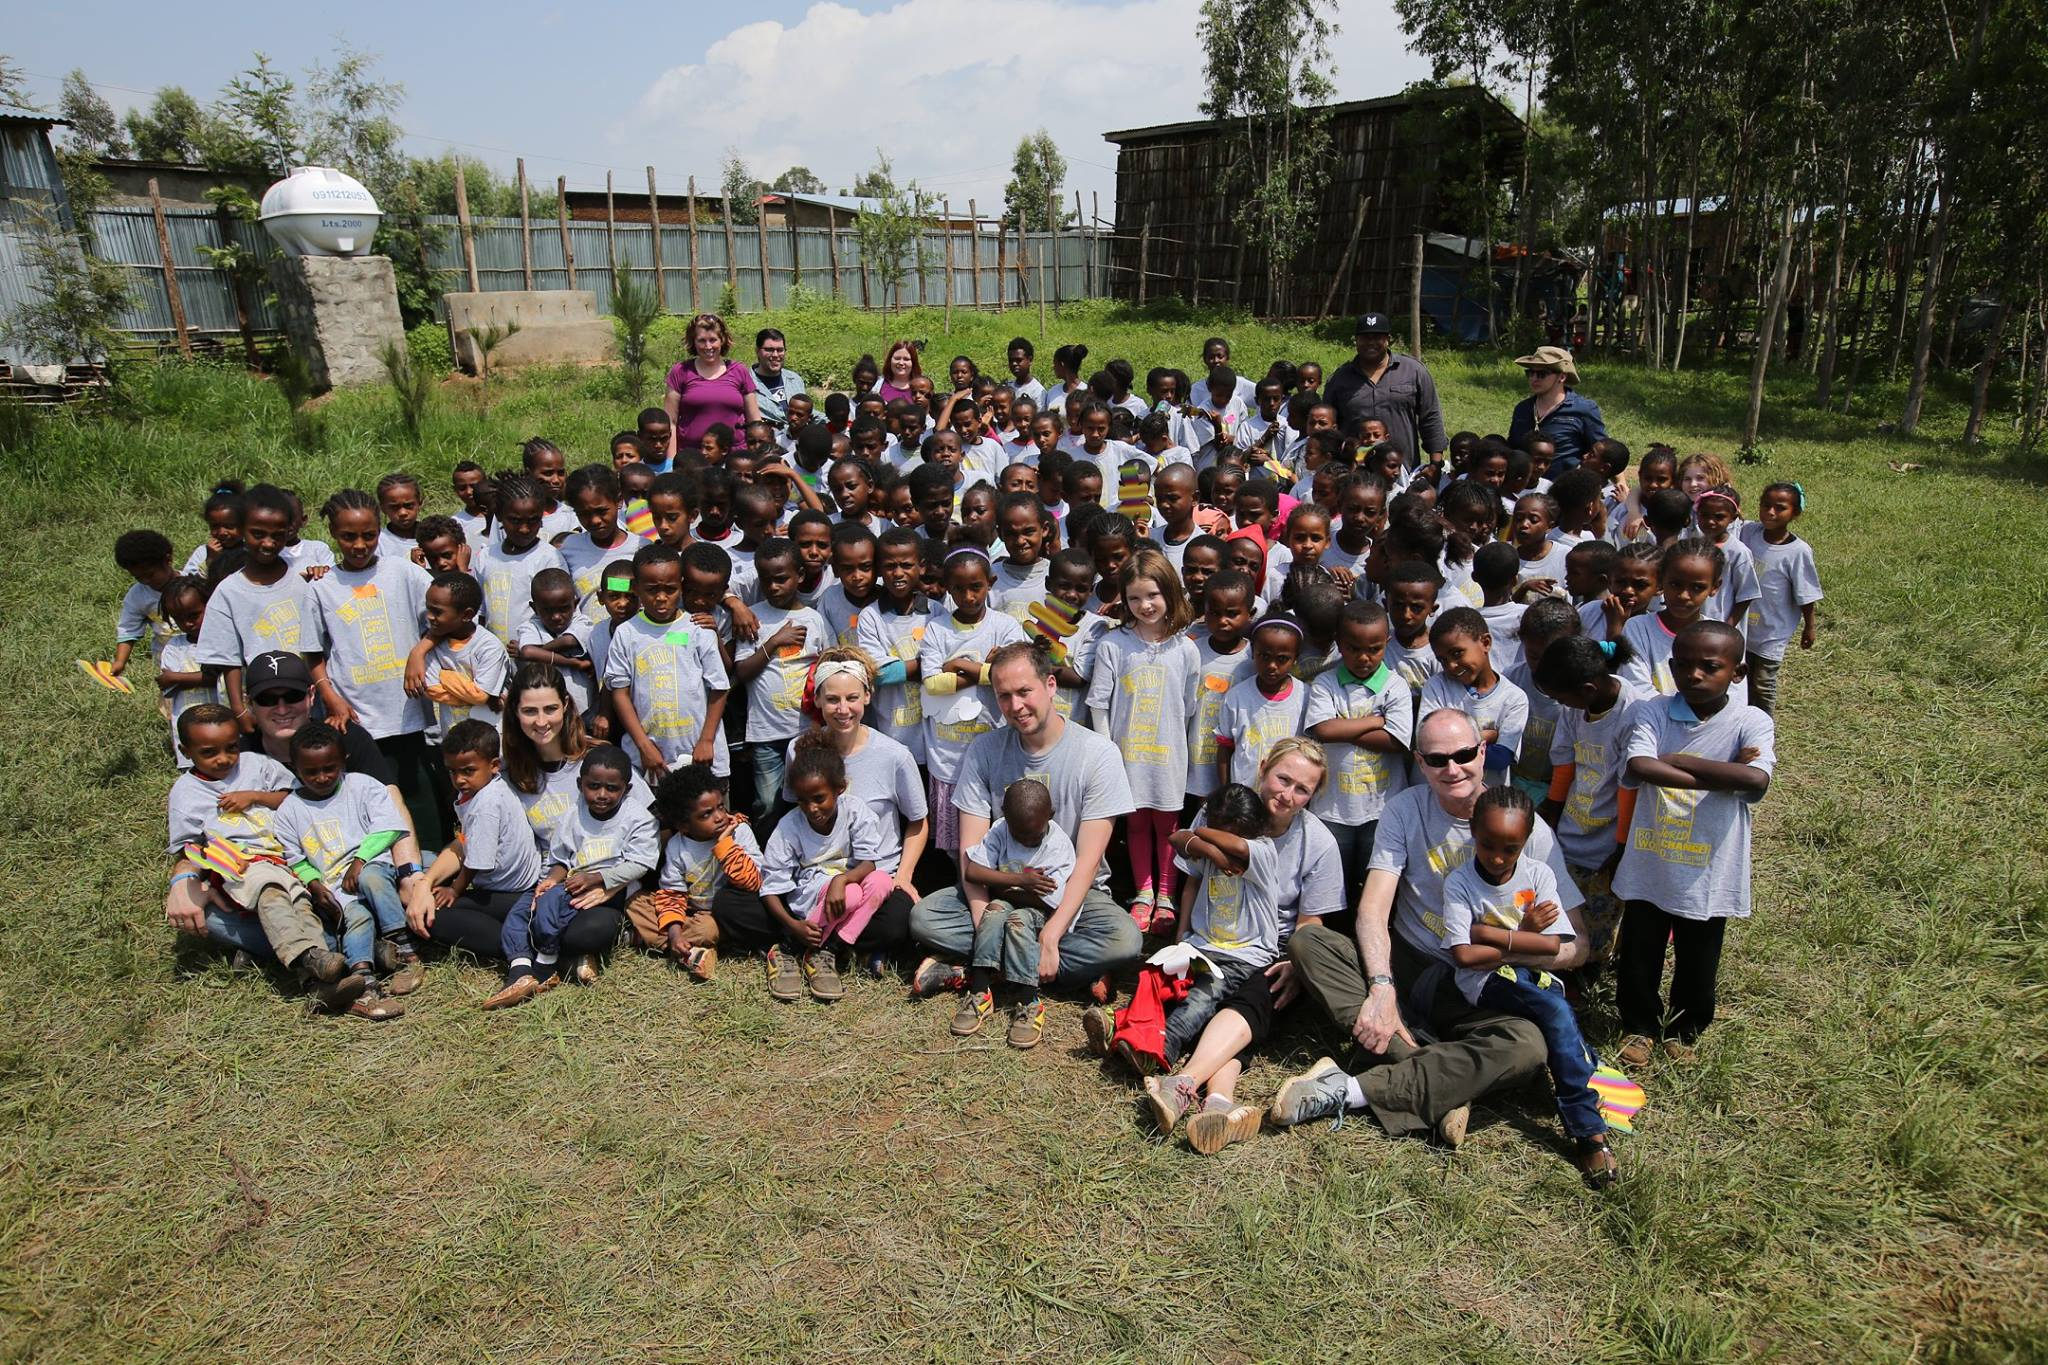 The children of the Woliso care point, sponsored by The Fearey Group.